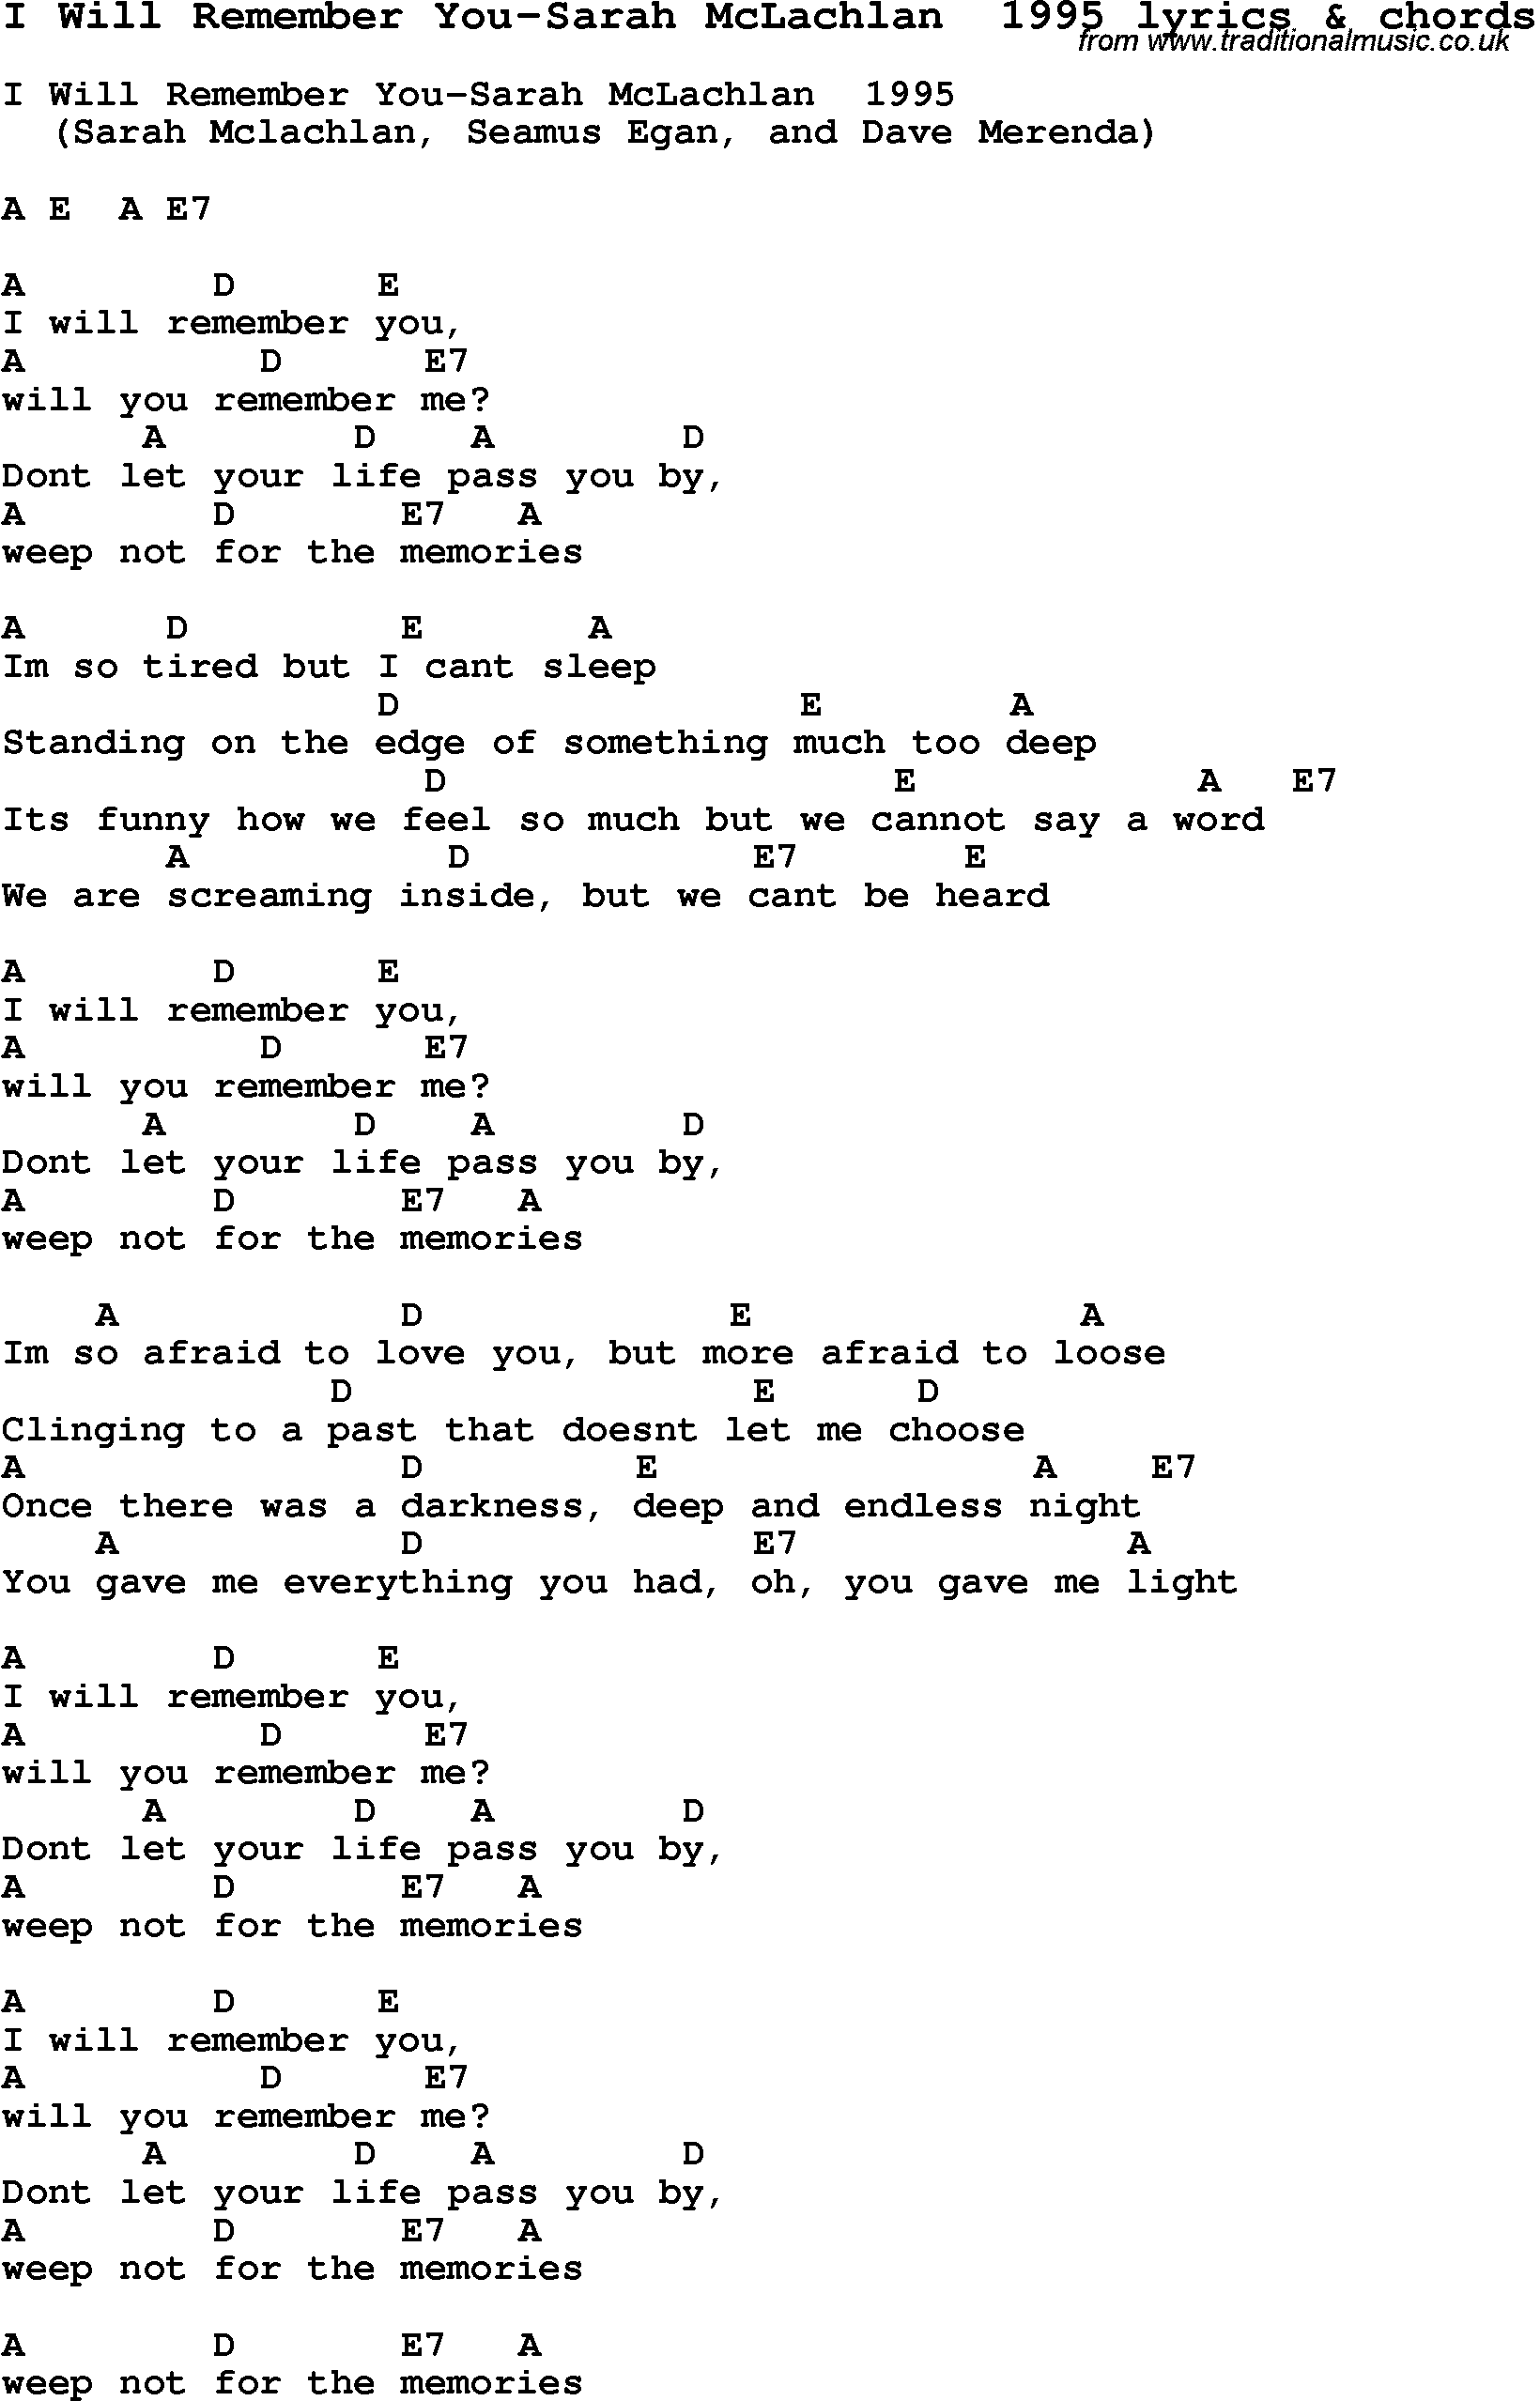 you will remember me lyrics